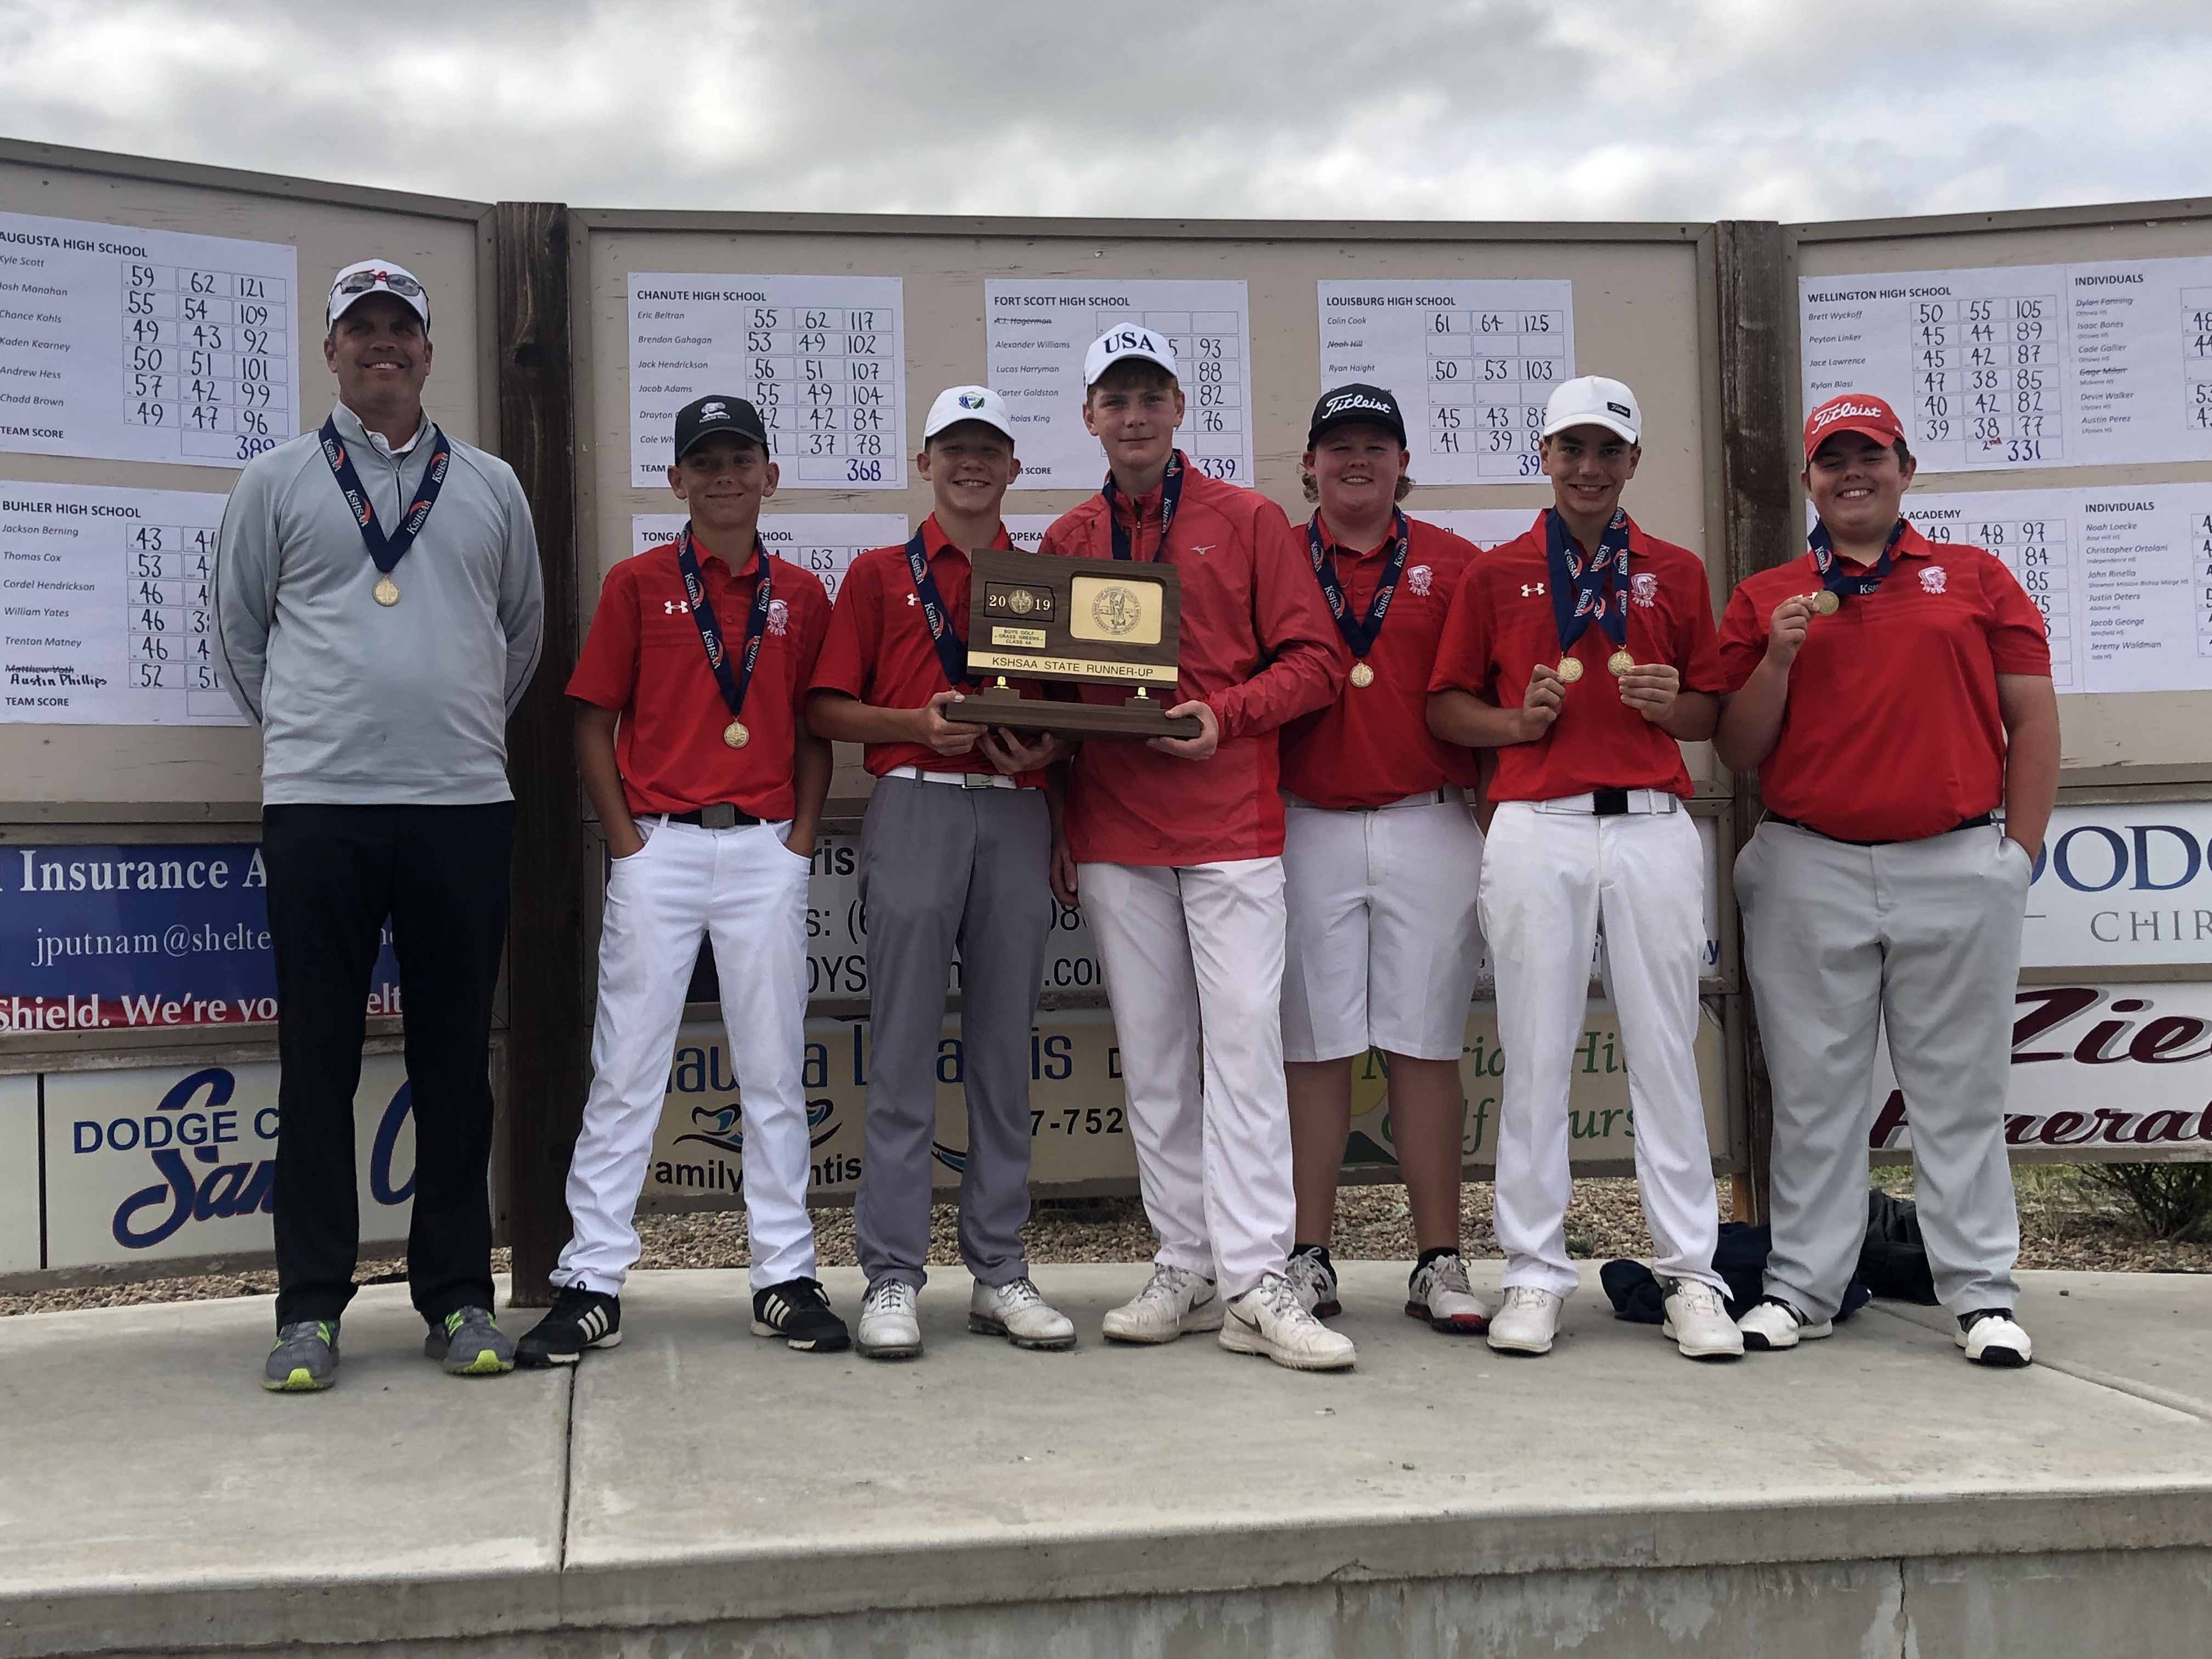 State 4A Golf 2019 Runners Up